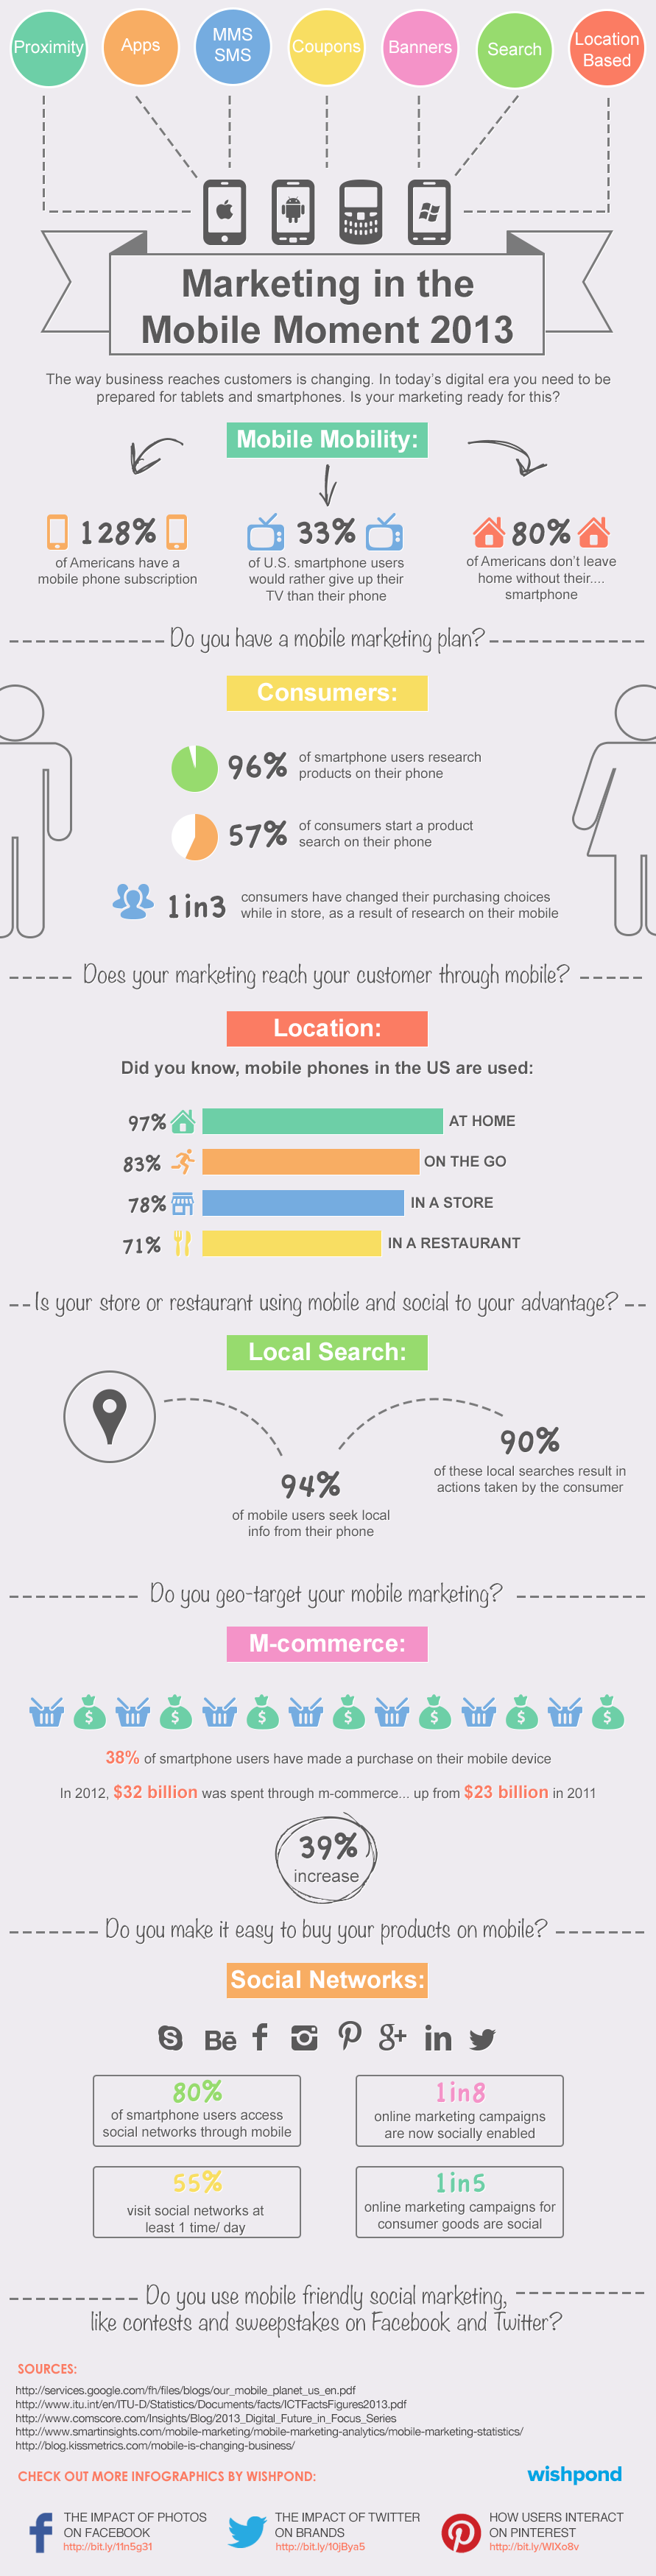 Infographic Wishpond Marketing in the Mobile Moment